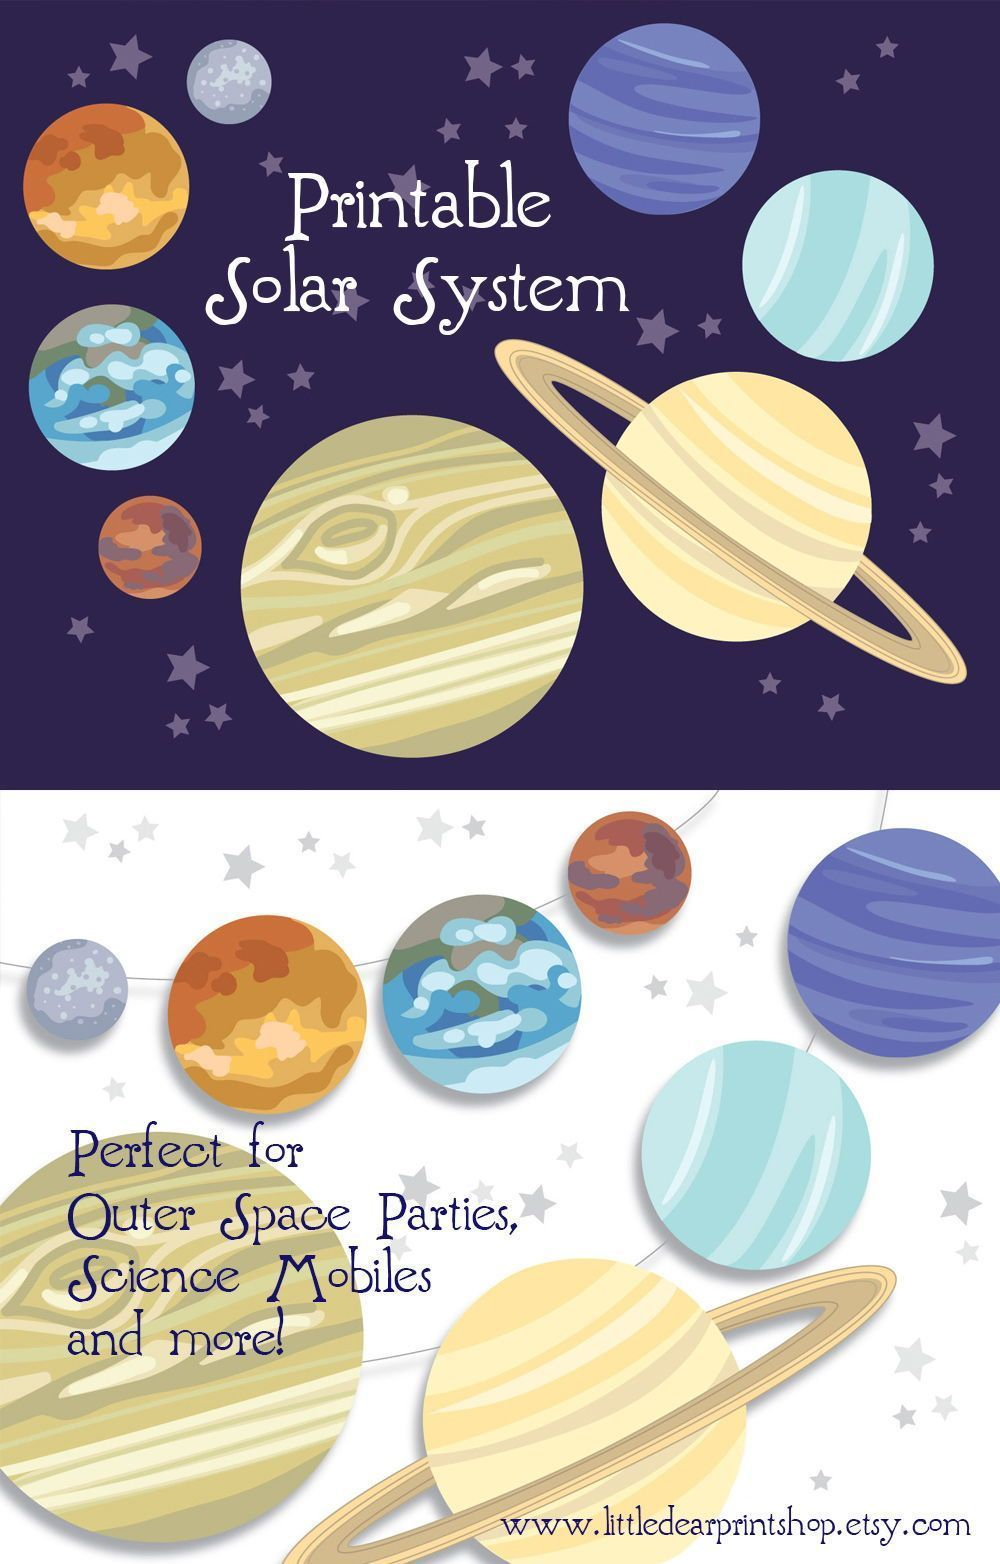 Printable Planets! Grab this PDF Printable solar system for all your outer space party, decorating or science project needs. #outerspaceparty Printable Planets! Grab this PDF Printable solar system for all your outer space party, decorating or science project needs. #outerspaceparty Printable Planets! Grab this PDF Printable solar system for all your outer space party, decorating or science project needs. #outerspaceparty Printable Planets! Grab this PDF Printable solar system for all your outer #outerspaceparty